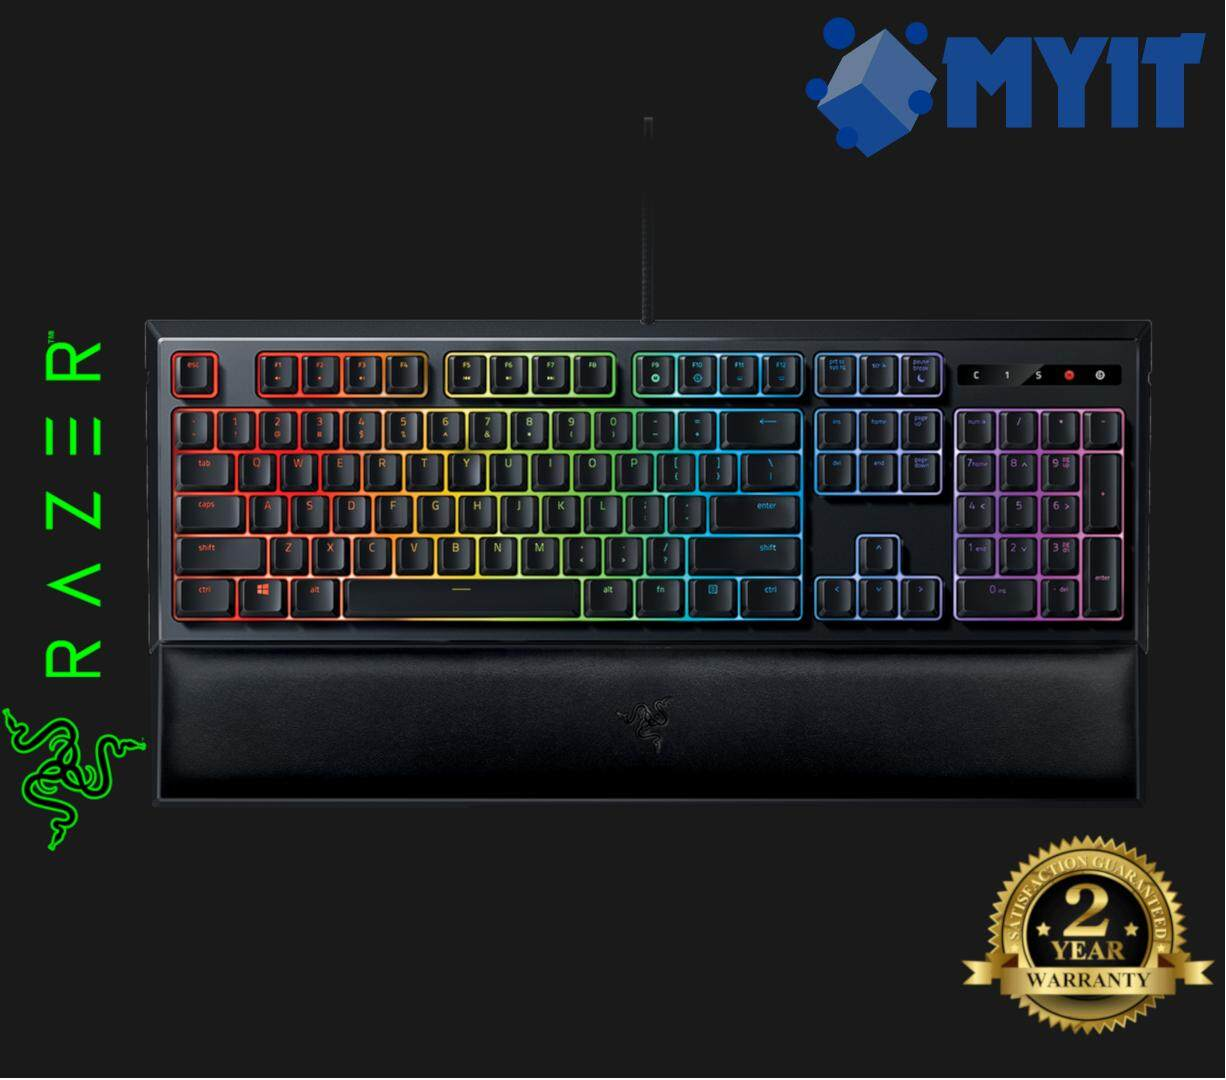 Razer Original Ornata Chroma Edition RGB Mechanical Feel Mecha-Membrane Full Sized Gaming Keyboard (Clicky Tactile Mid-height Keycap)